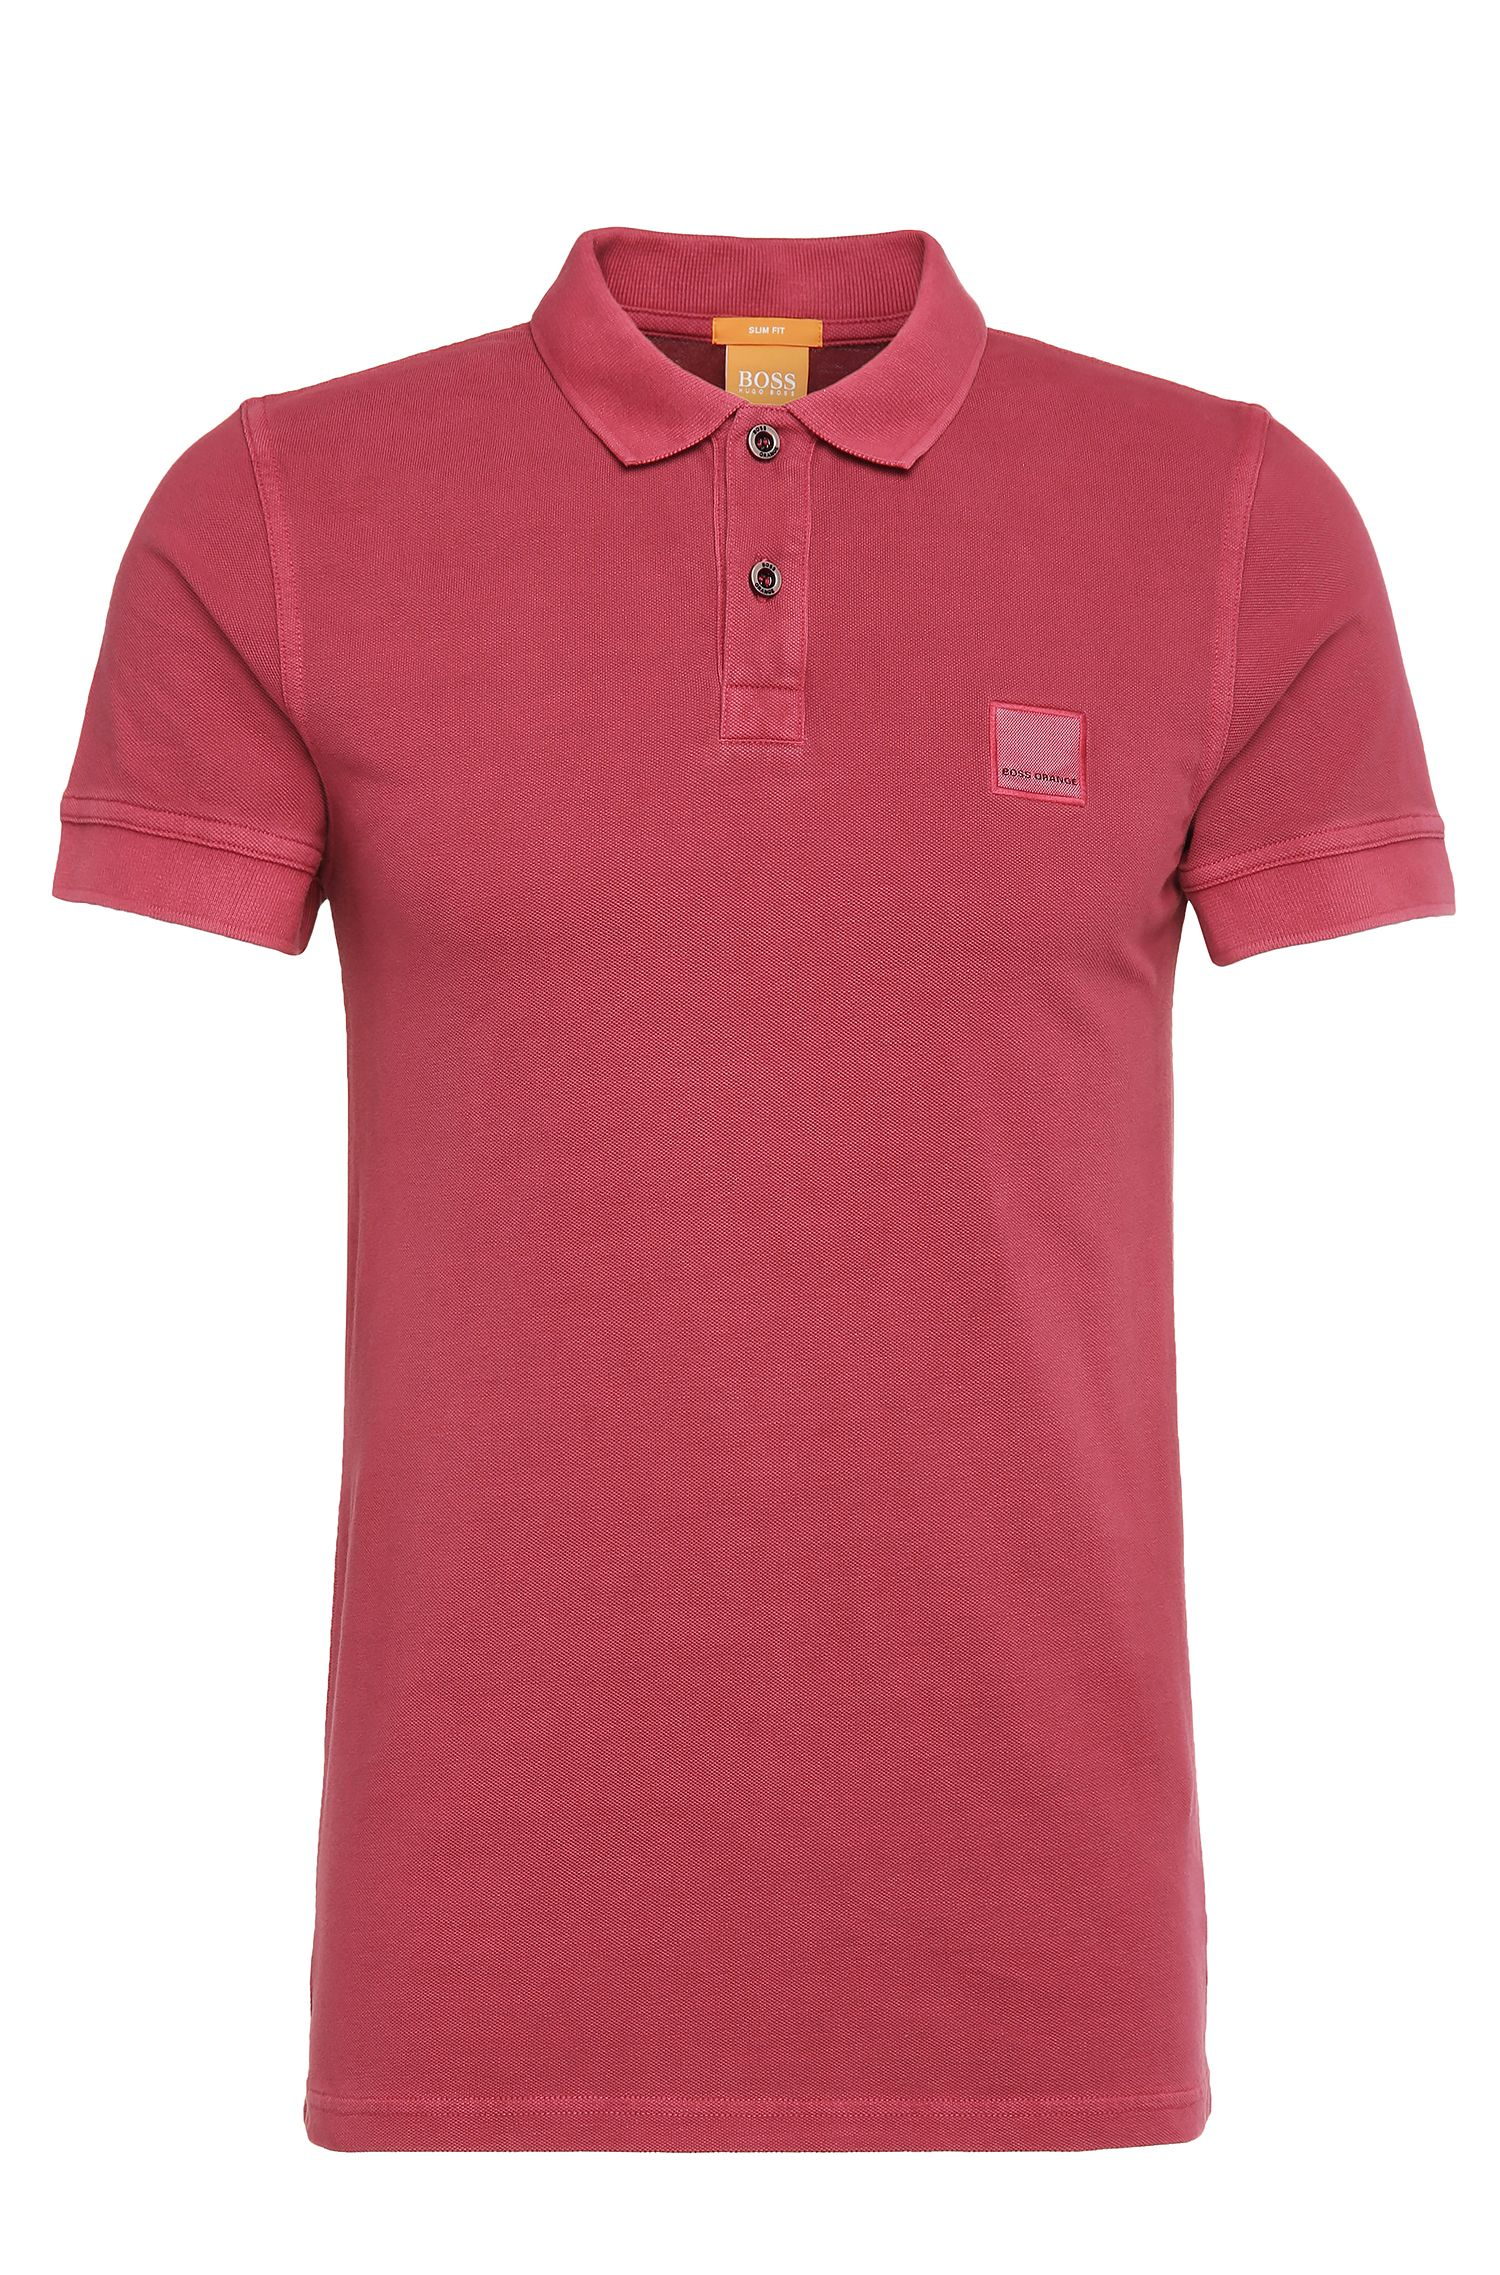 Cotton Polo Shirt, Slim Fit | Pascha, Red